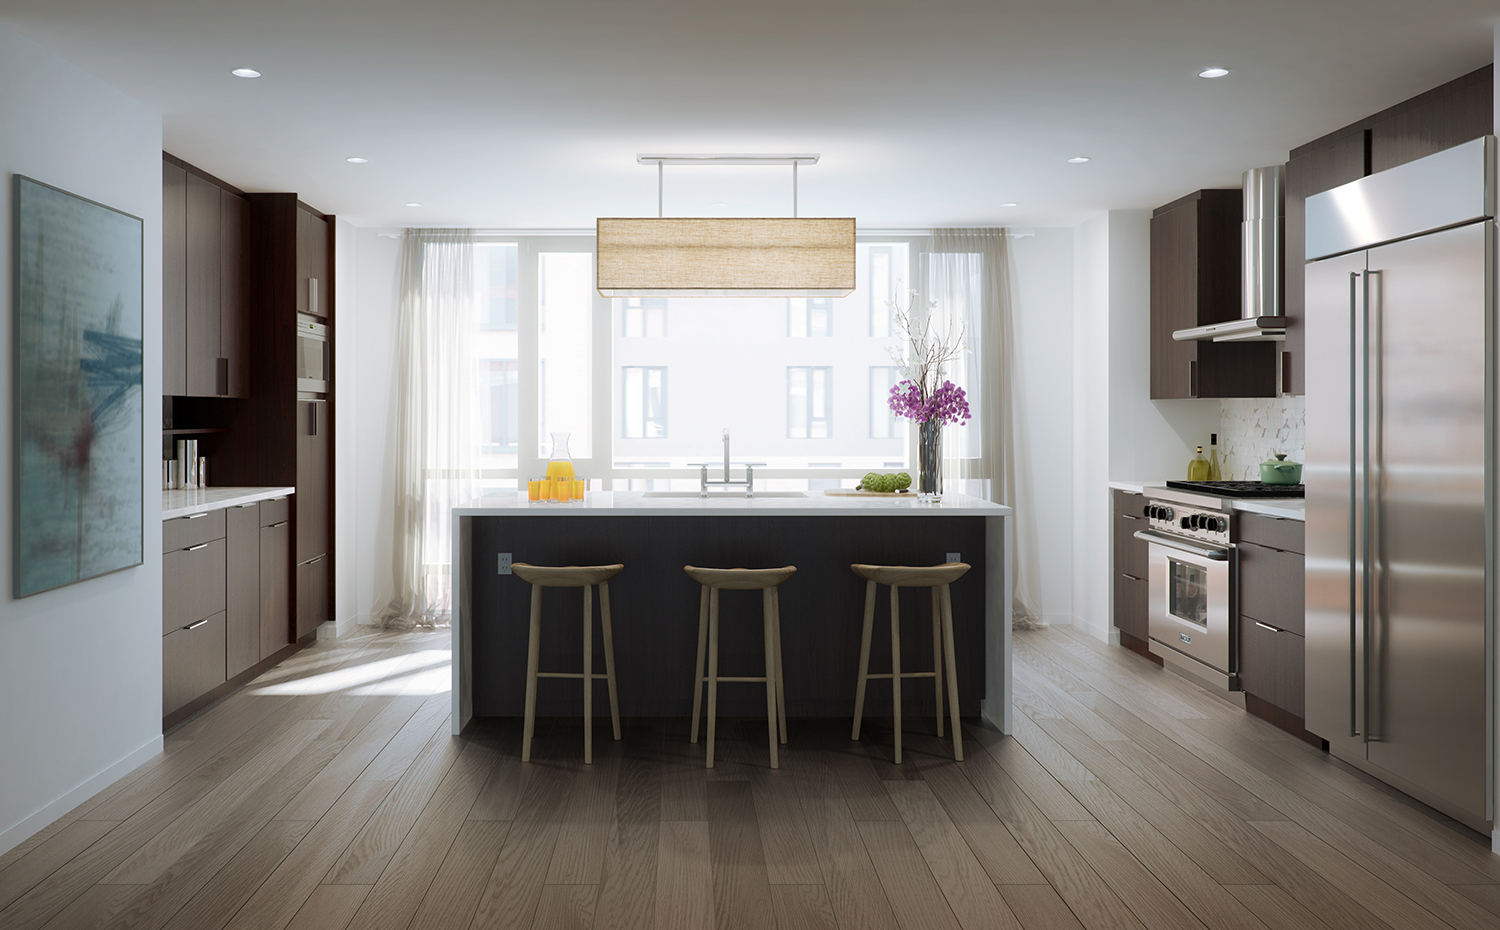 Rendering of a kitchen at 456 Washington Street. Exclusive to YIMBY.